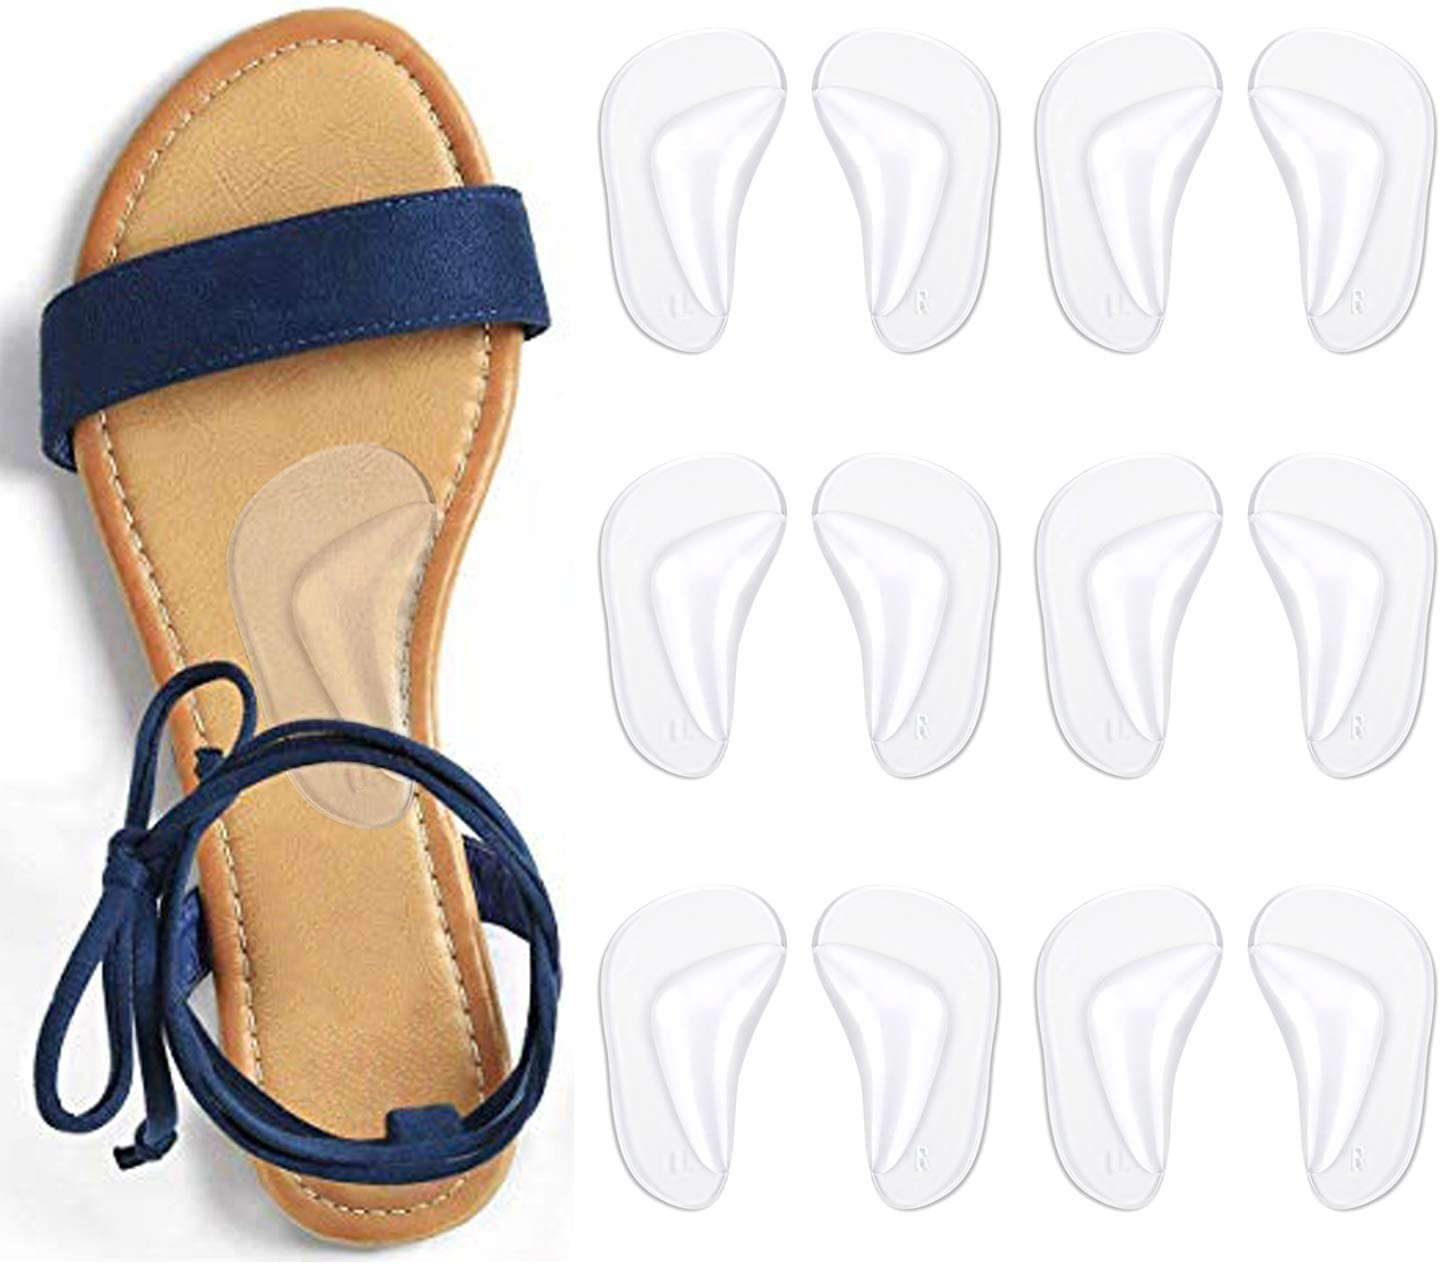 Gel Arch Support Cushions for Men & Women, Shoe Insoles for Flat Feet, Reusable Arch Inserts for Plantar Fasciitis, Adhesive Arch Pad for Relieve Pressure and Feet Pain: Health & Personal Care